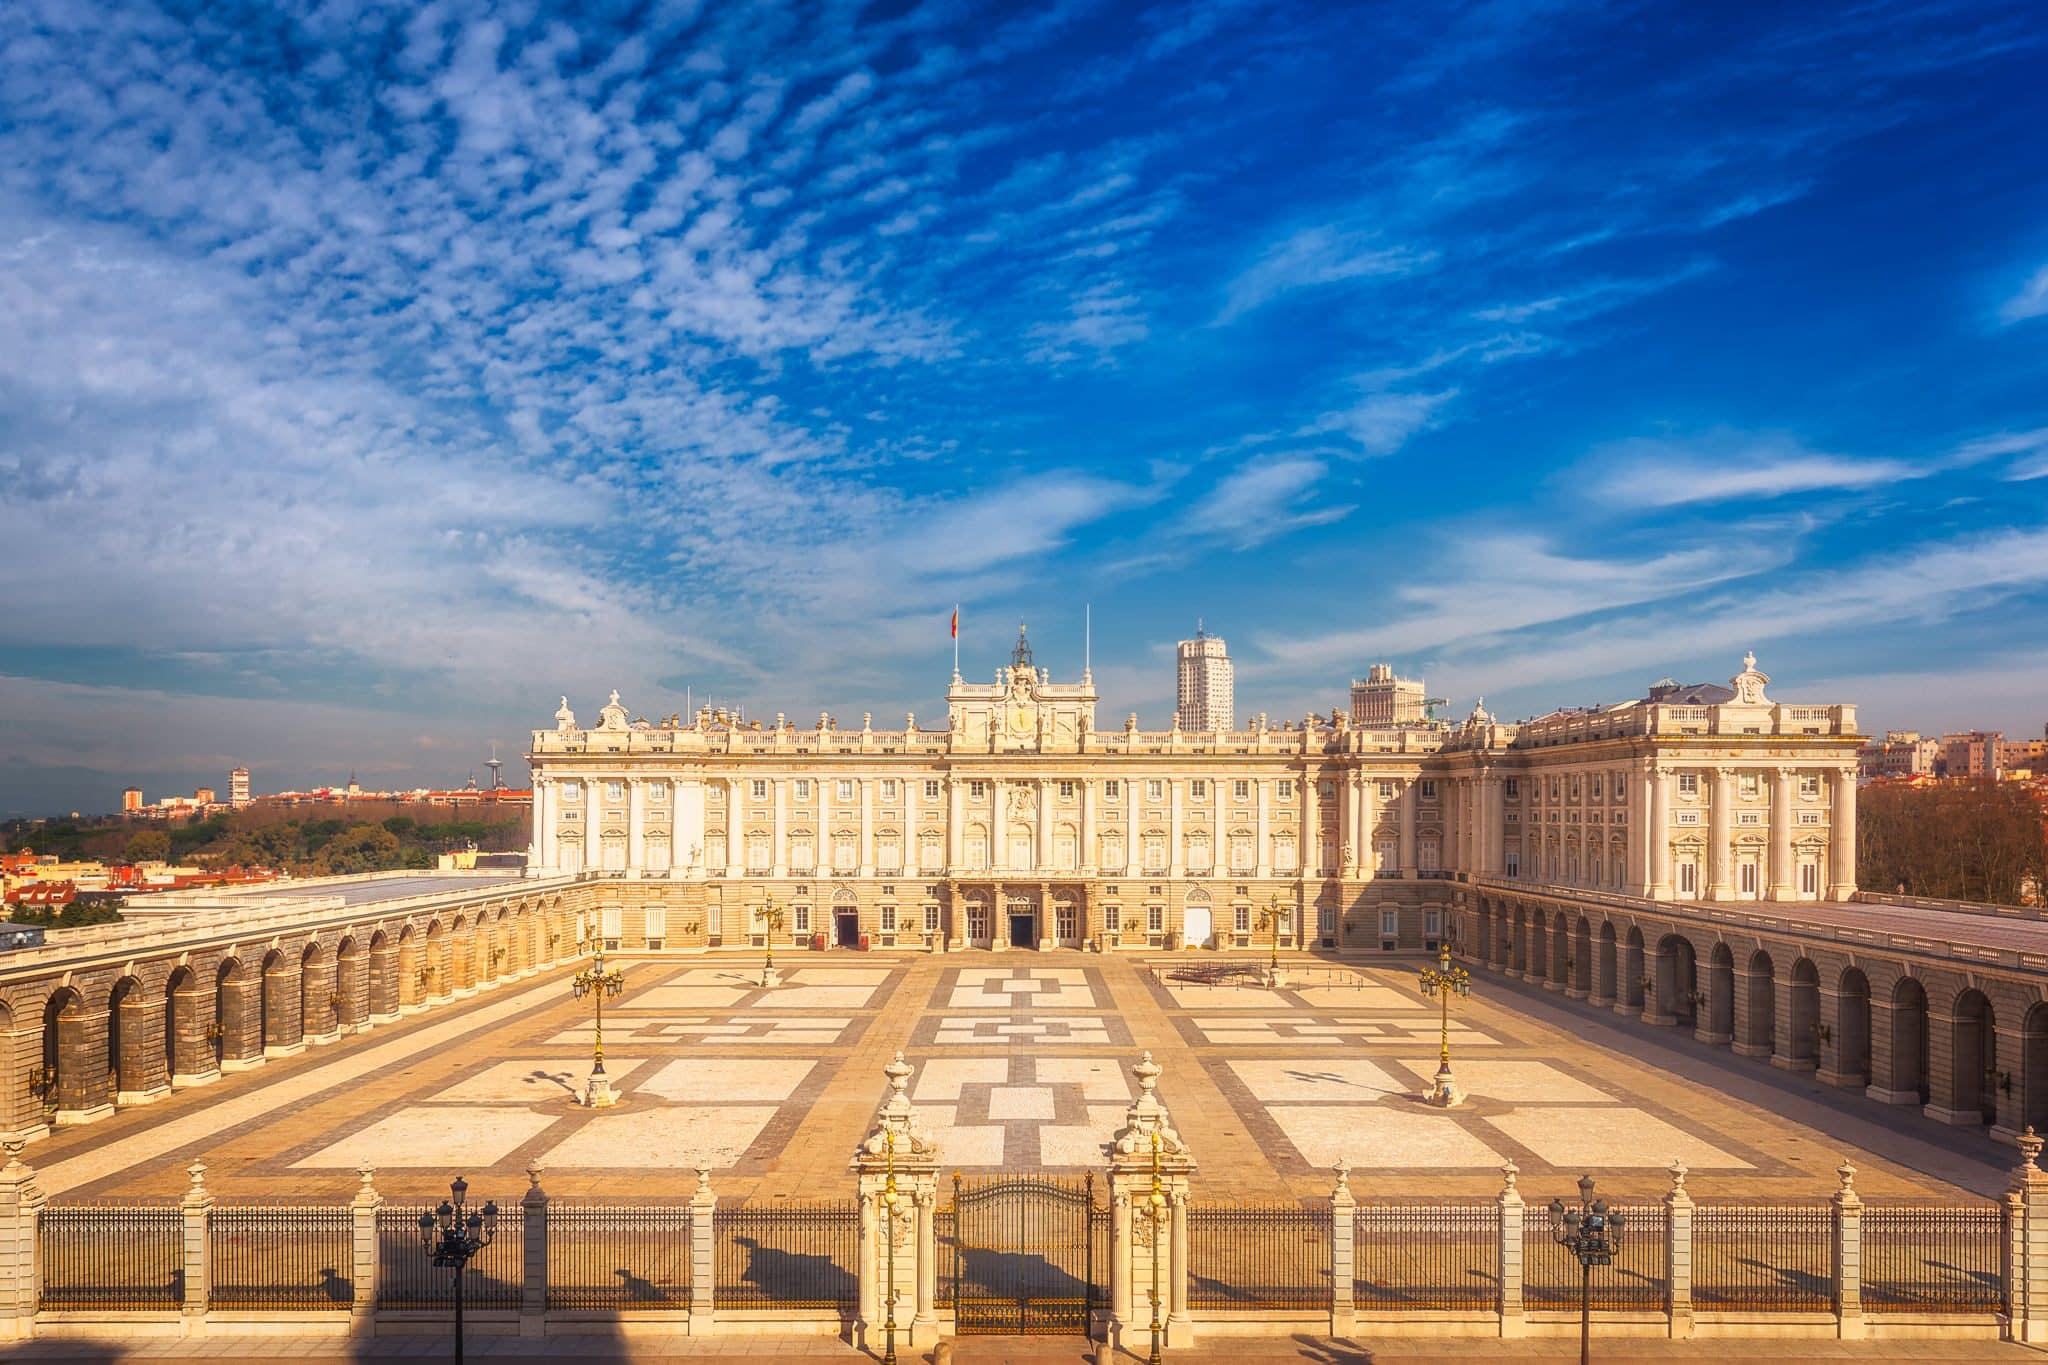 The Royal Palace of Madrid and The Plaza de la Armeria during a sunny day in the winter.